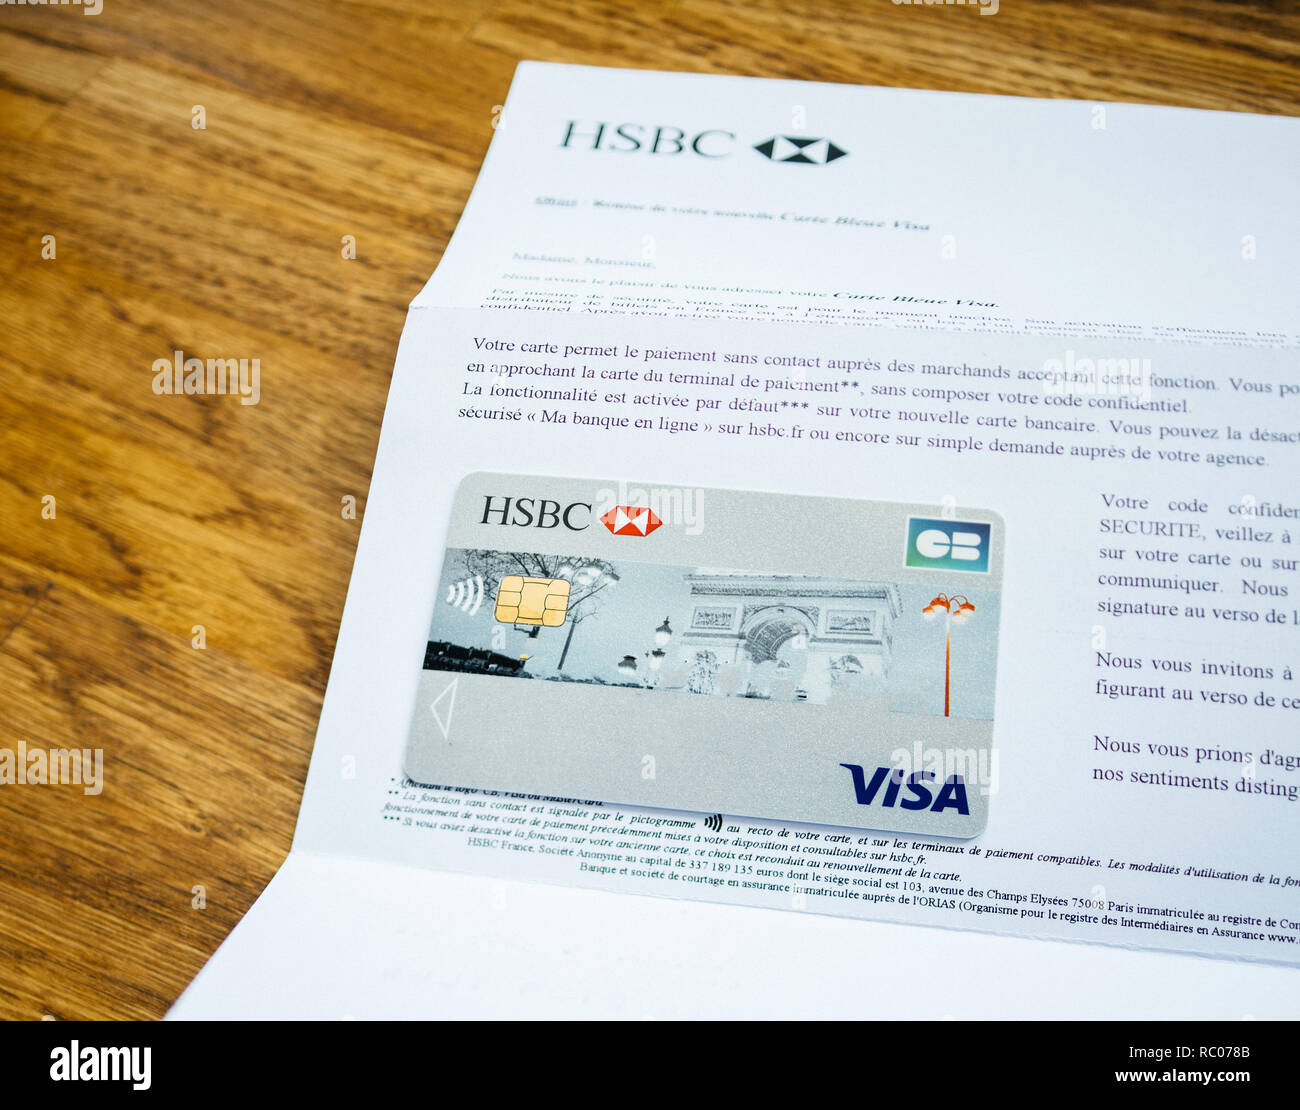 PARIS, FRANCE - JAN 26, 2017: New Contactless HSBC Visa banking card reception mail welcome on wooden table Stock Photo